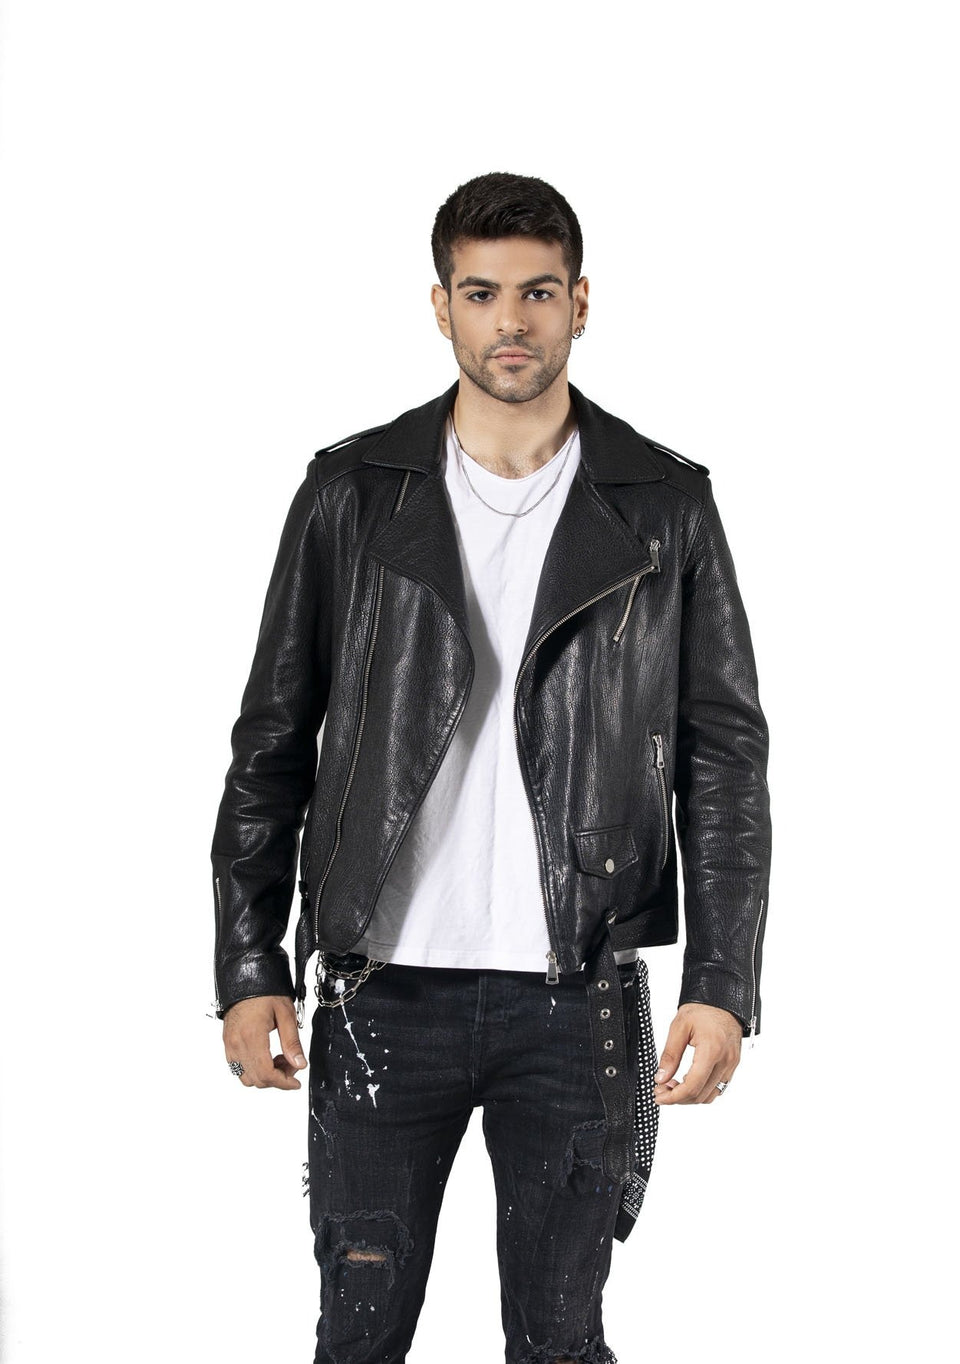 Black Martin V2 Genuine Leather Jacket For Men's